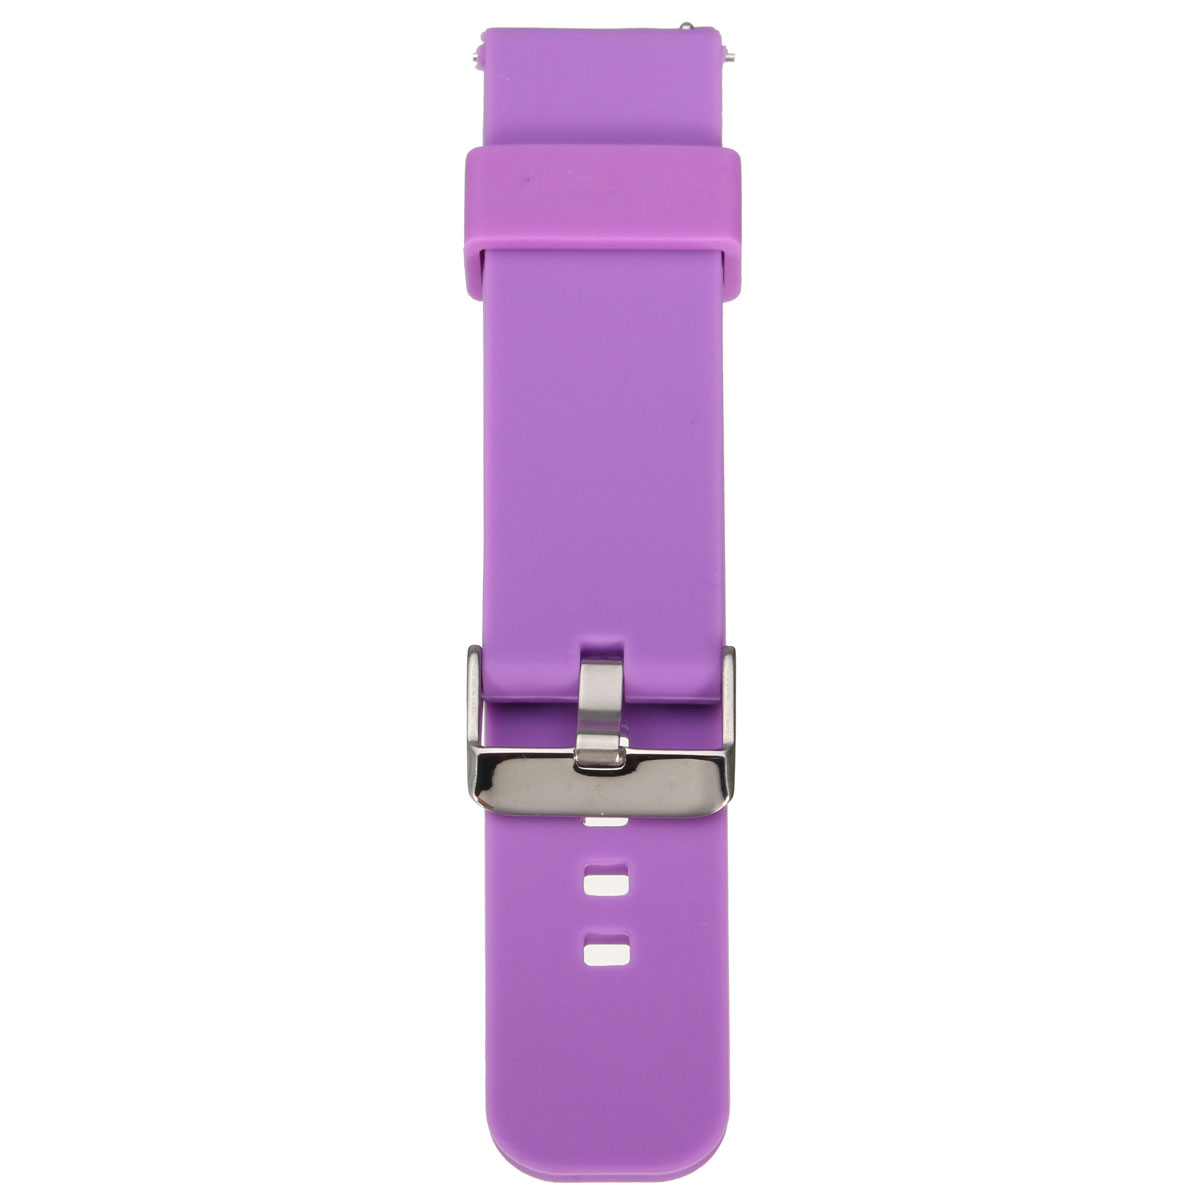 Sports Silicone Watch Band Strap For Pebble Time Samsung ...